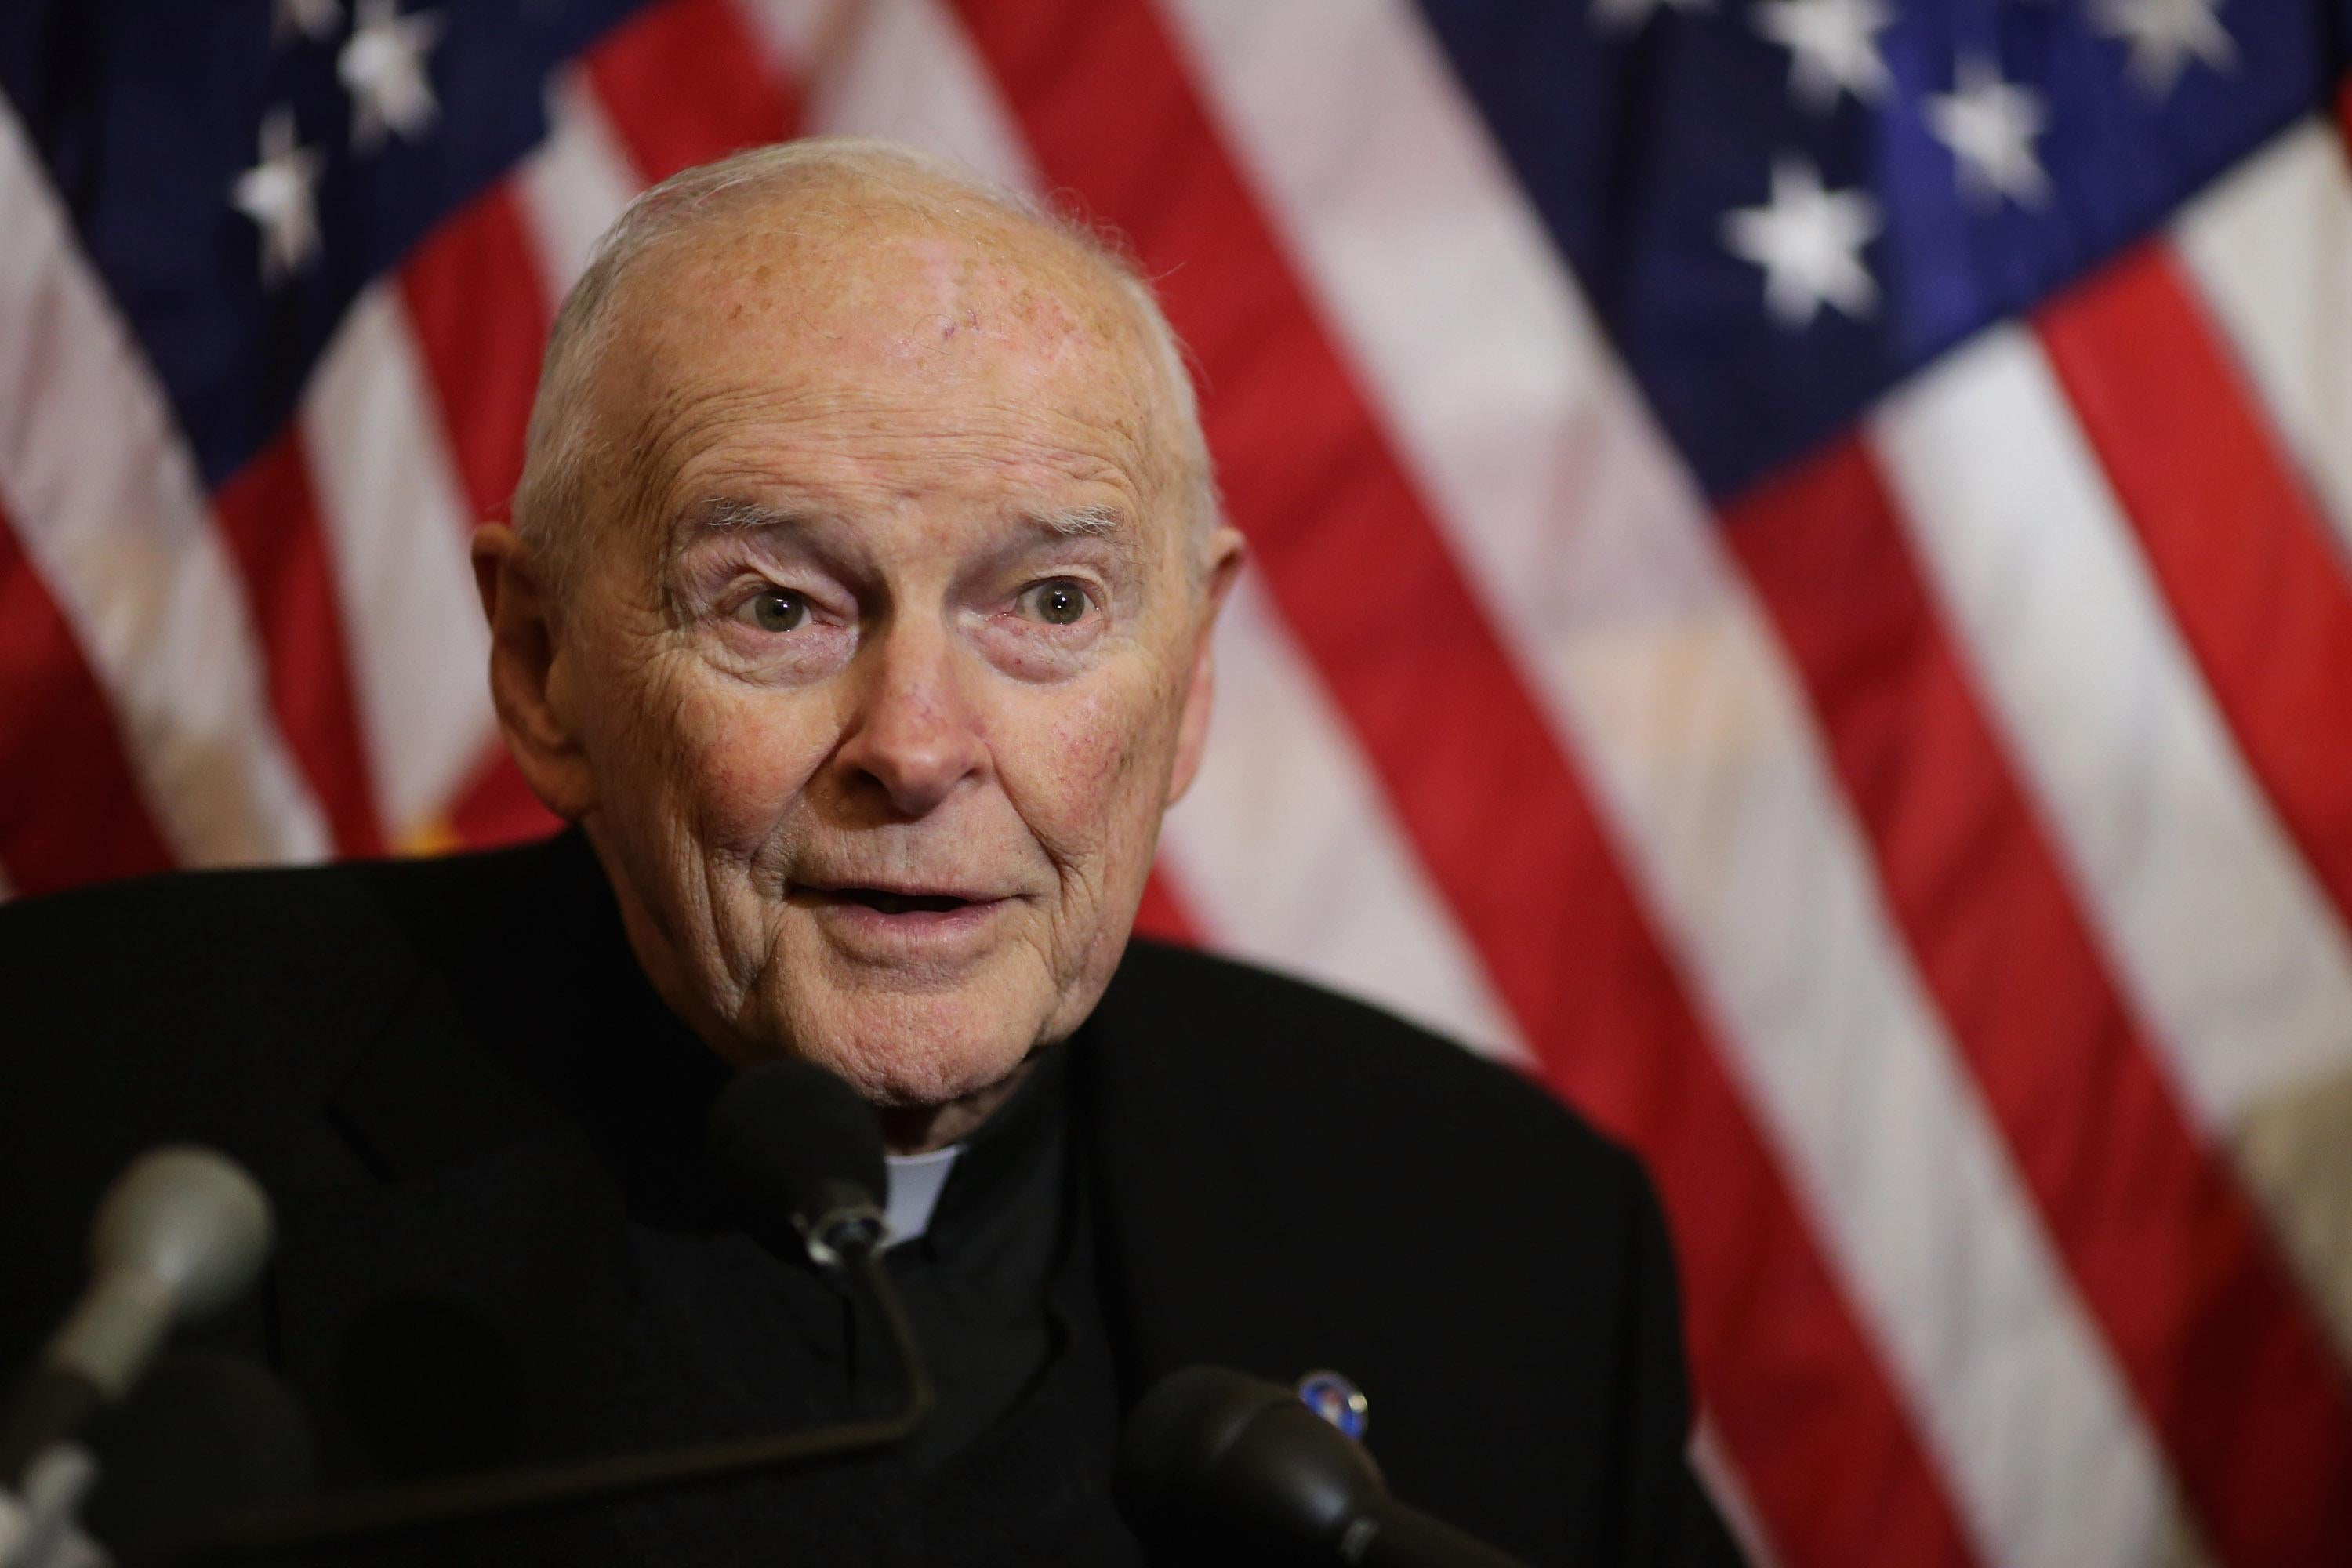 McCarrick speaks into microphones. He sits in front of an American flag backdrop.